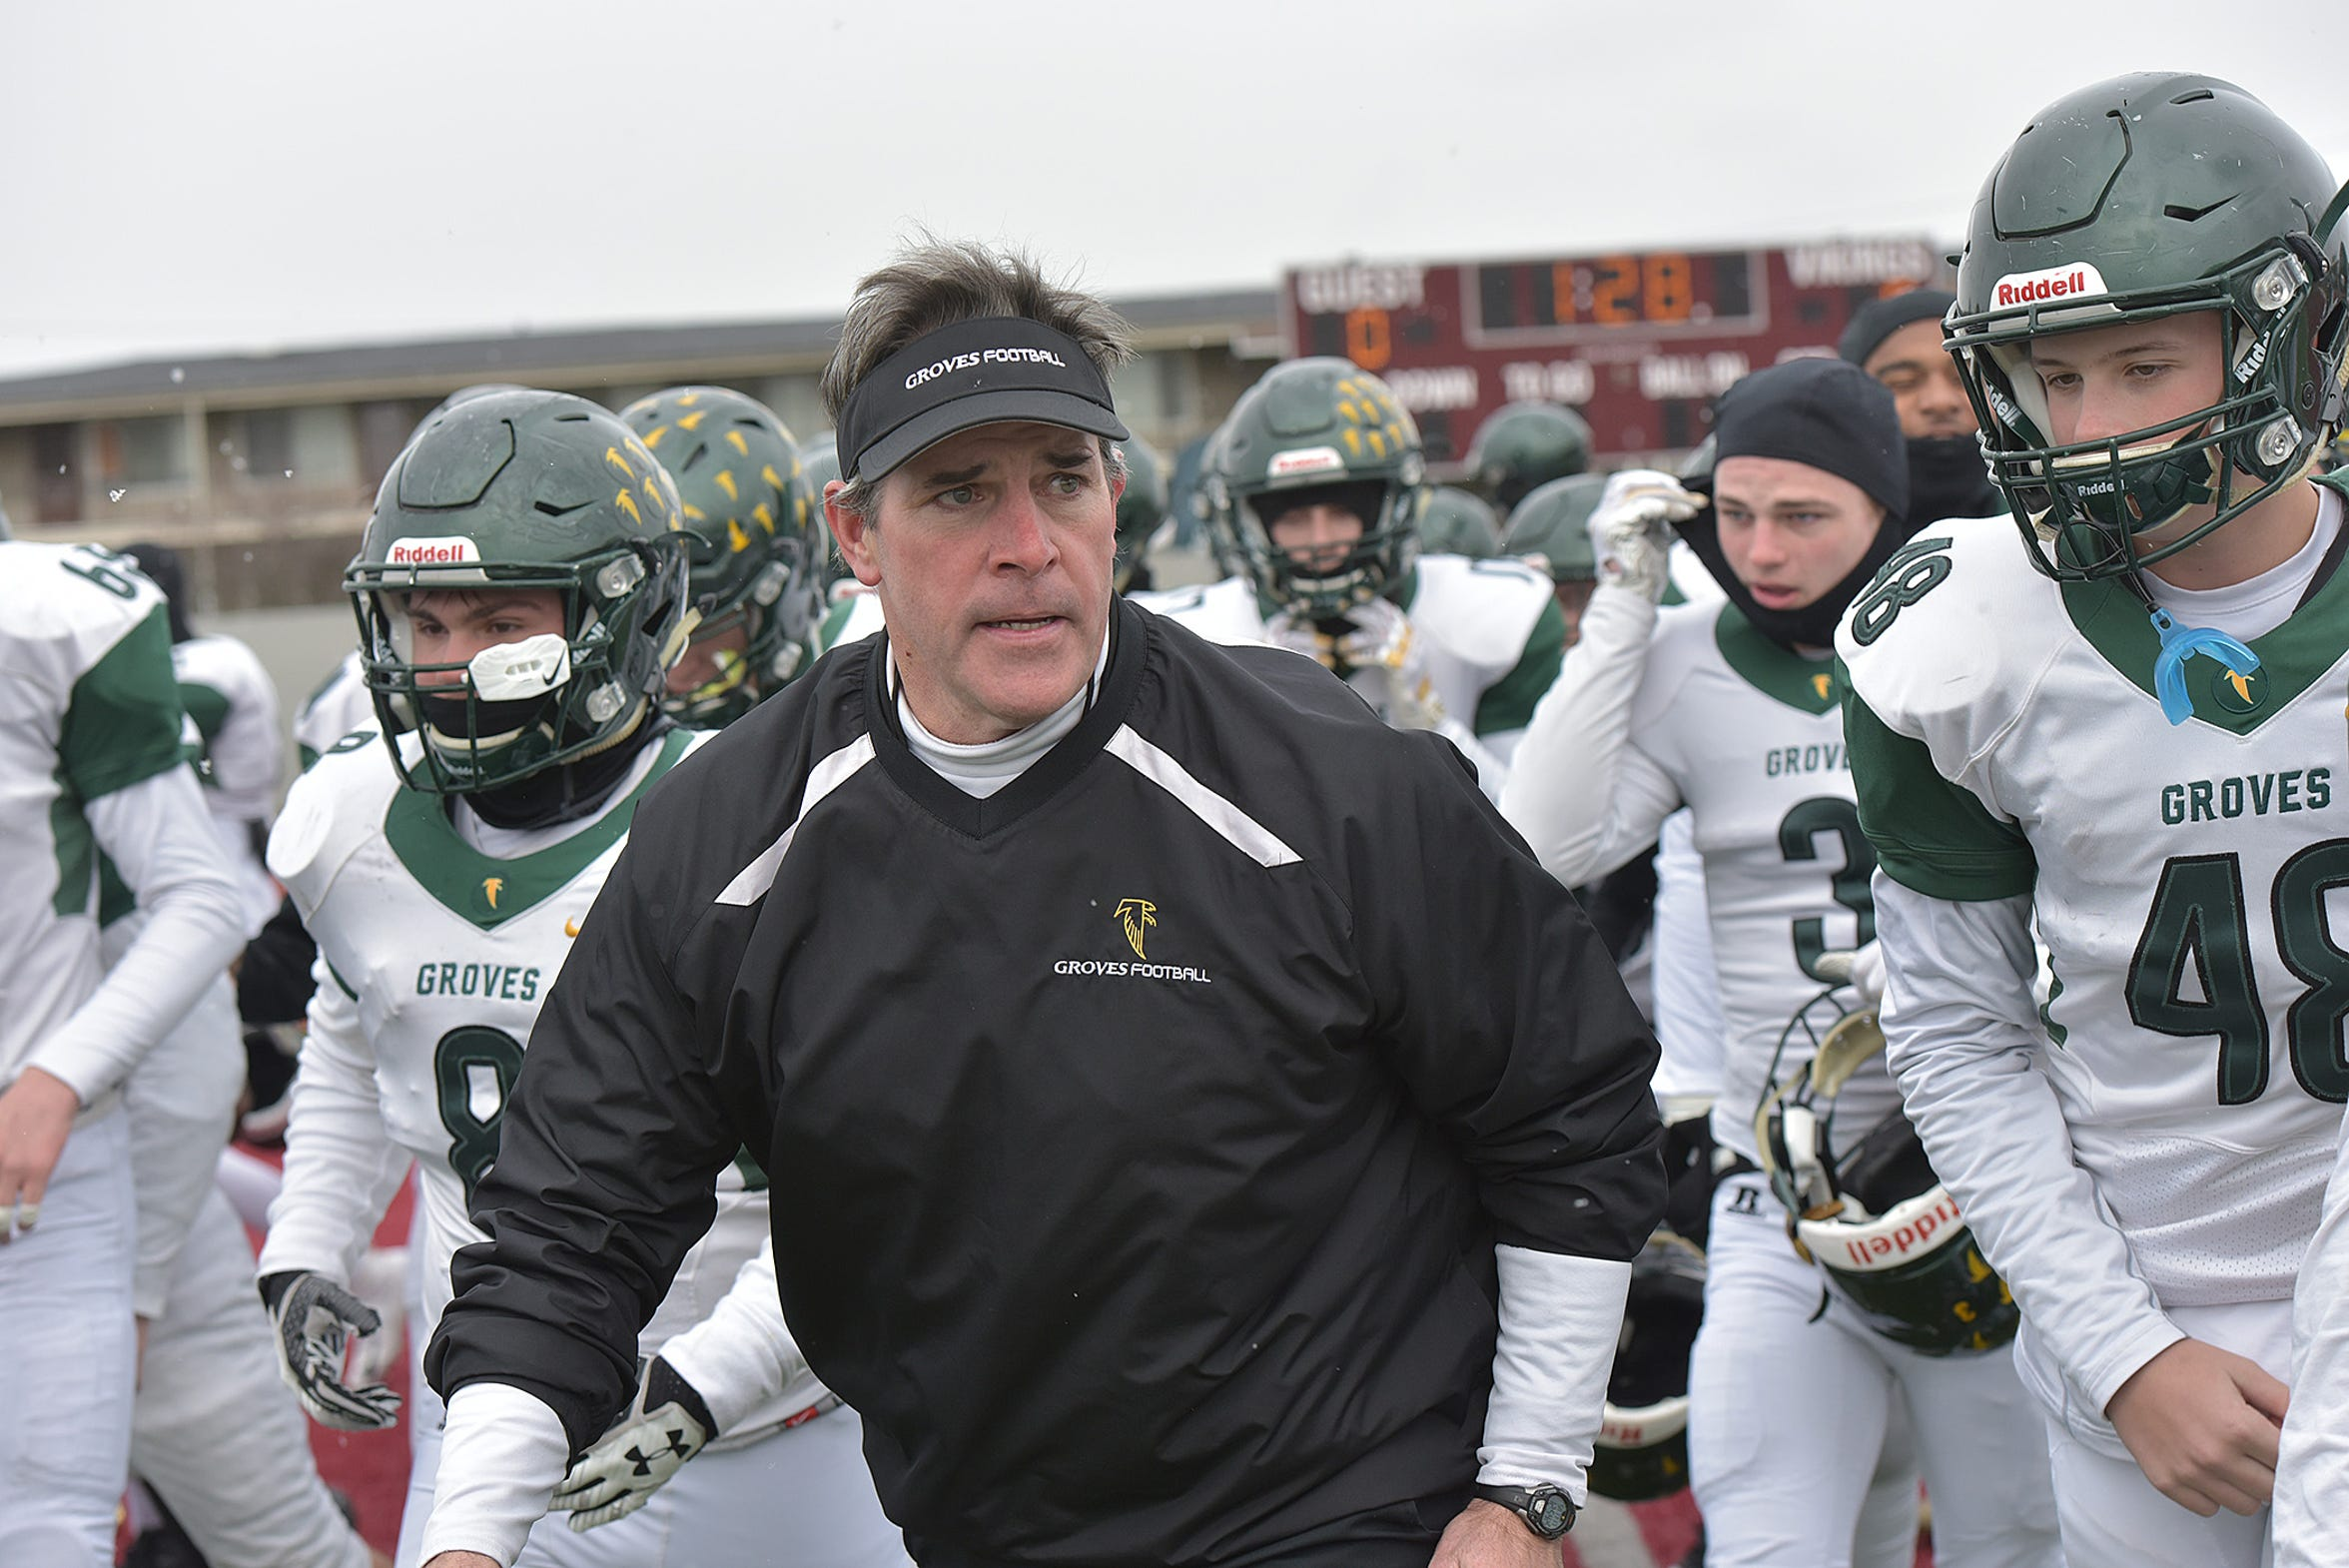 Birminghame Groves Coach Brendan Flaherty and the team take the field.